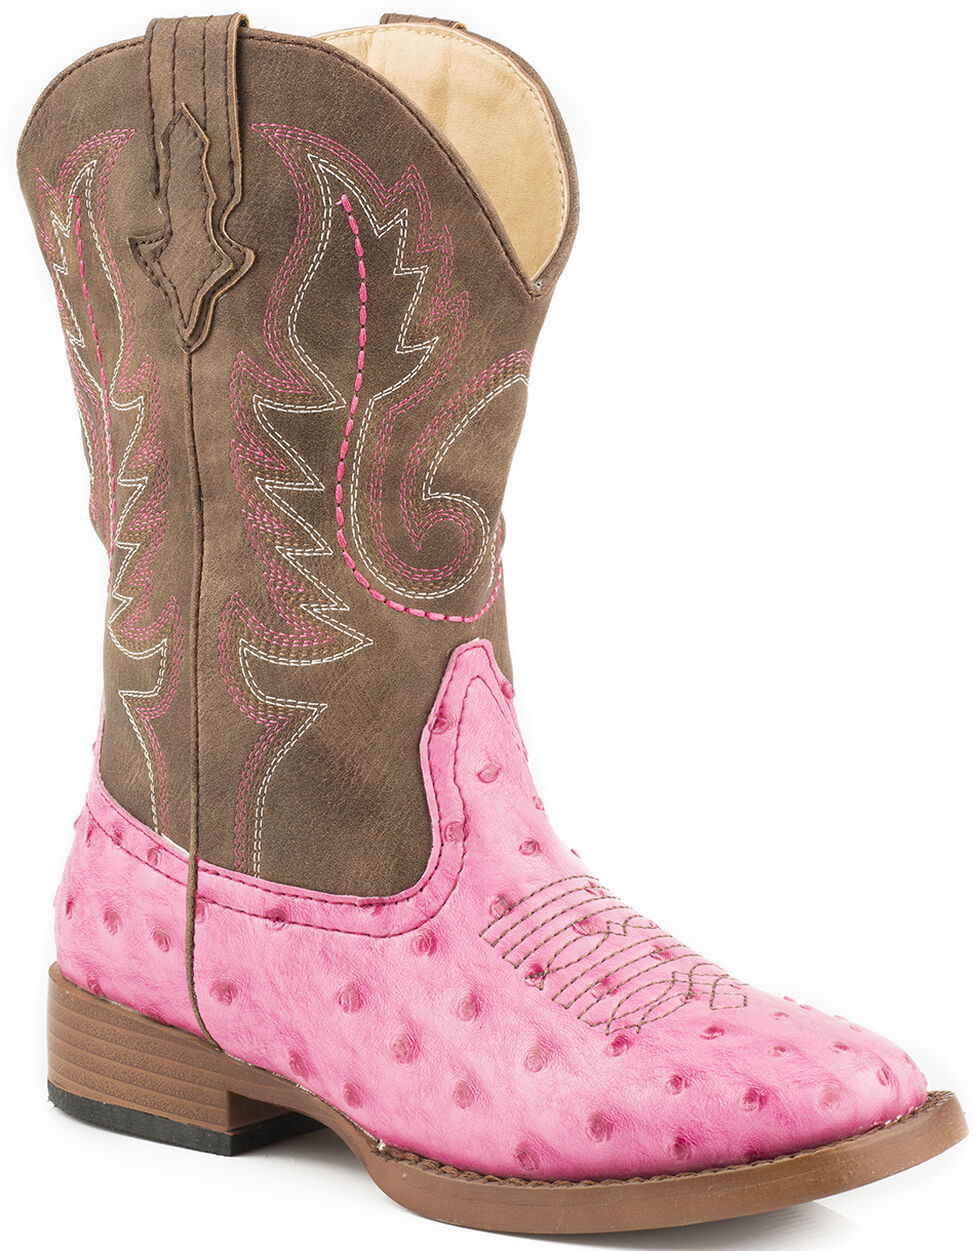 Roper Youth Girls' Pink Faux Ostrich Print Cowgirl boots - Square Toe, Pink, hi-res